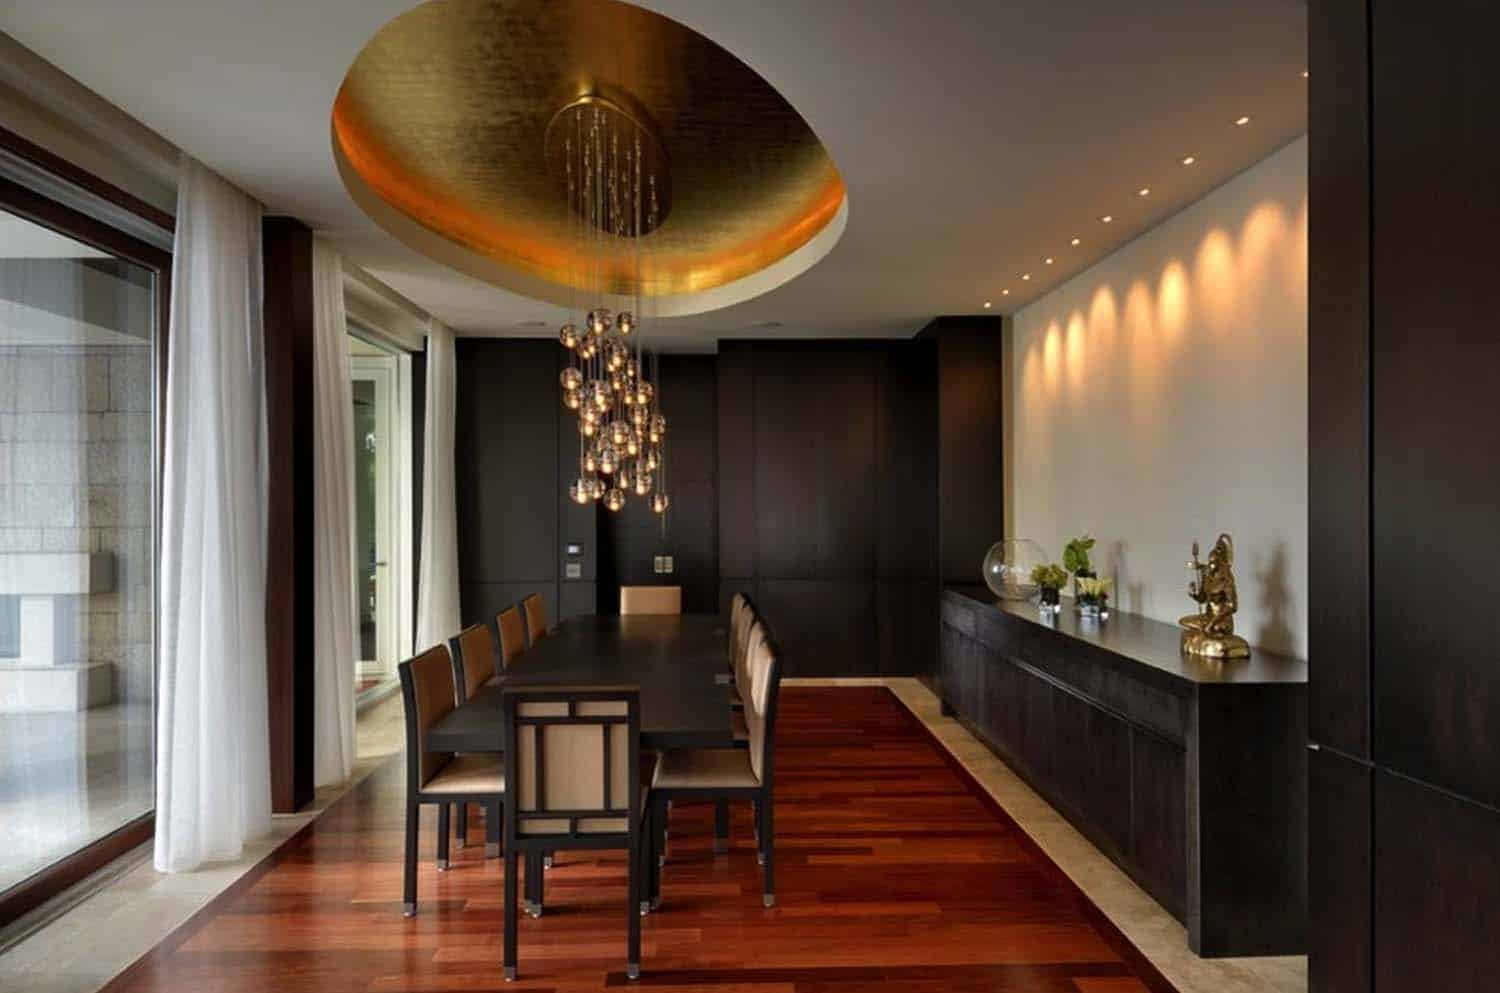 vancouver-island-residence-mckinley-burkart-architects-04-1-kindesign